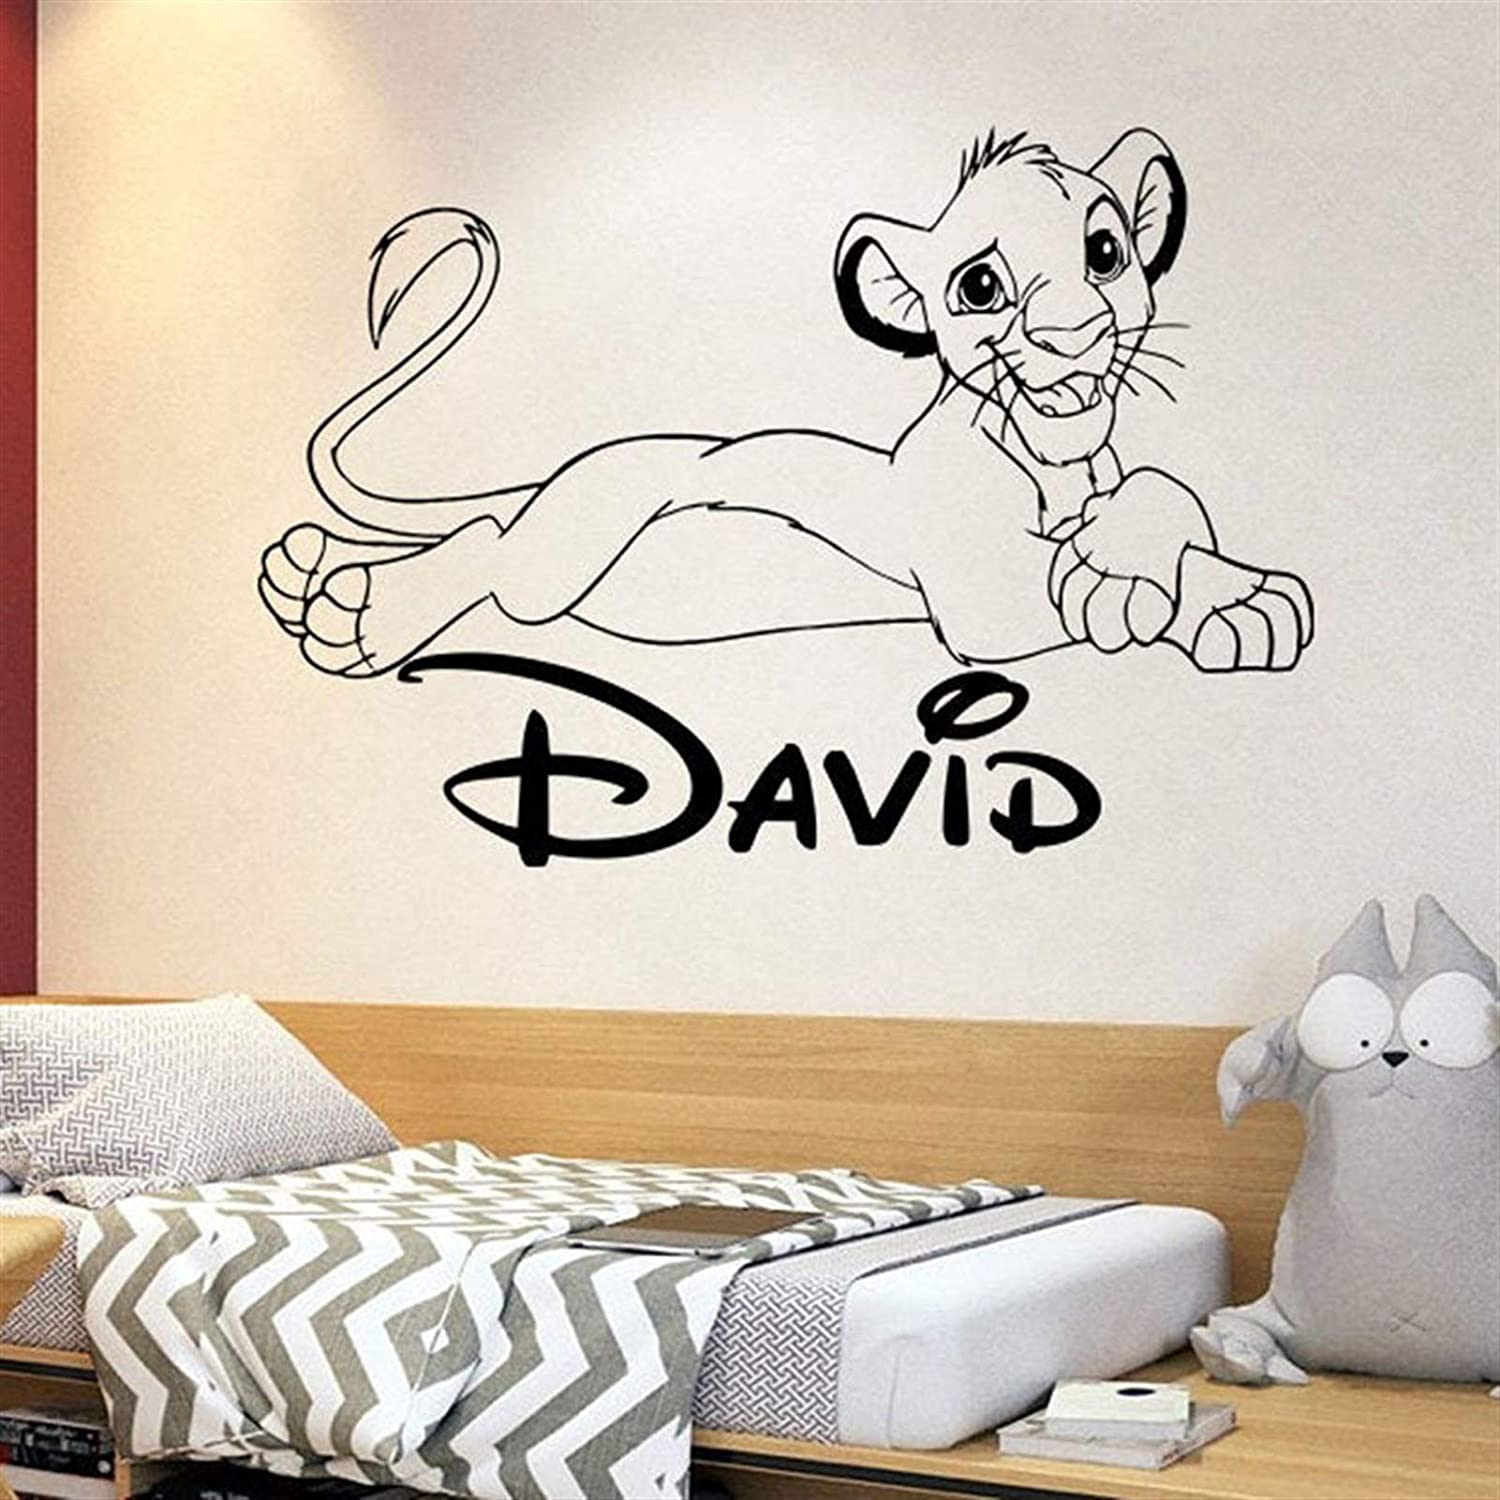 Universal Wall Sticker Mural Lion Decoration Bombing free All items free shipping shipping The King